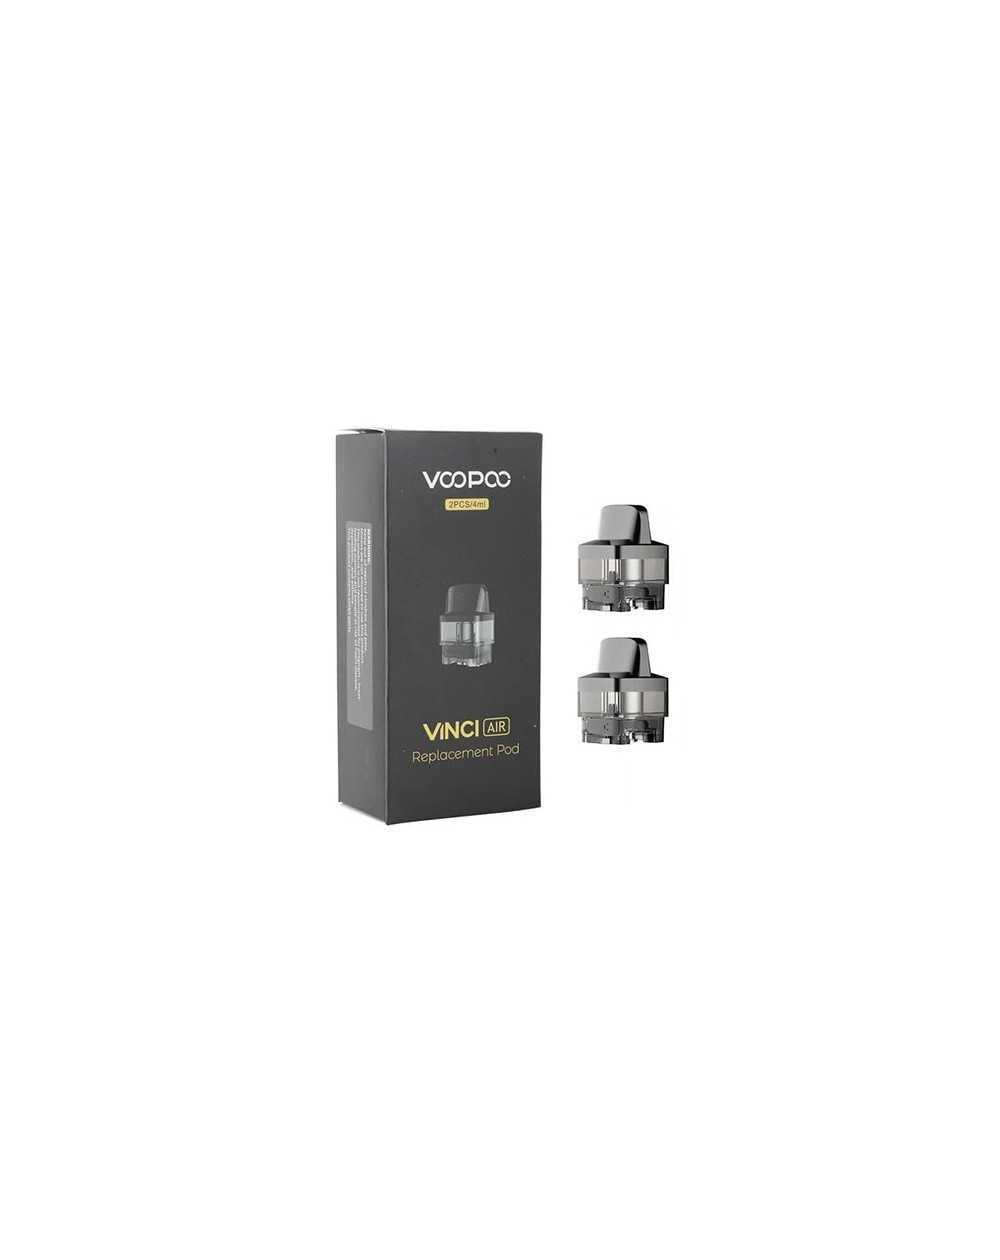 Cartridge Pod Vinci Air - Voopoo-1